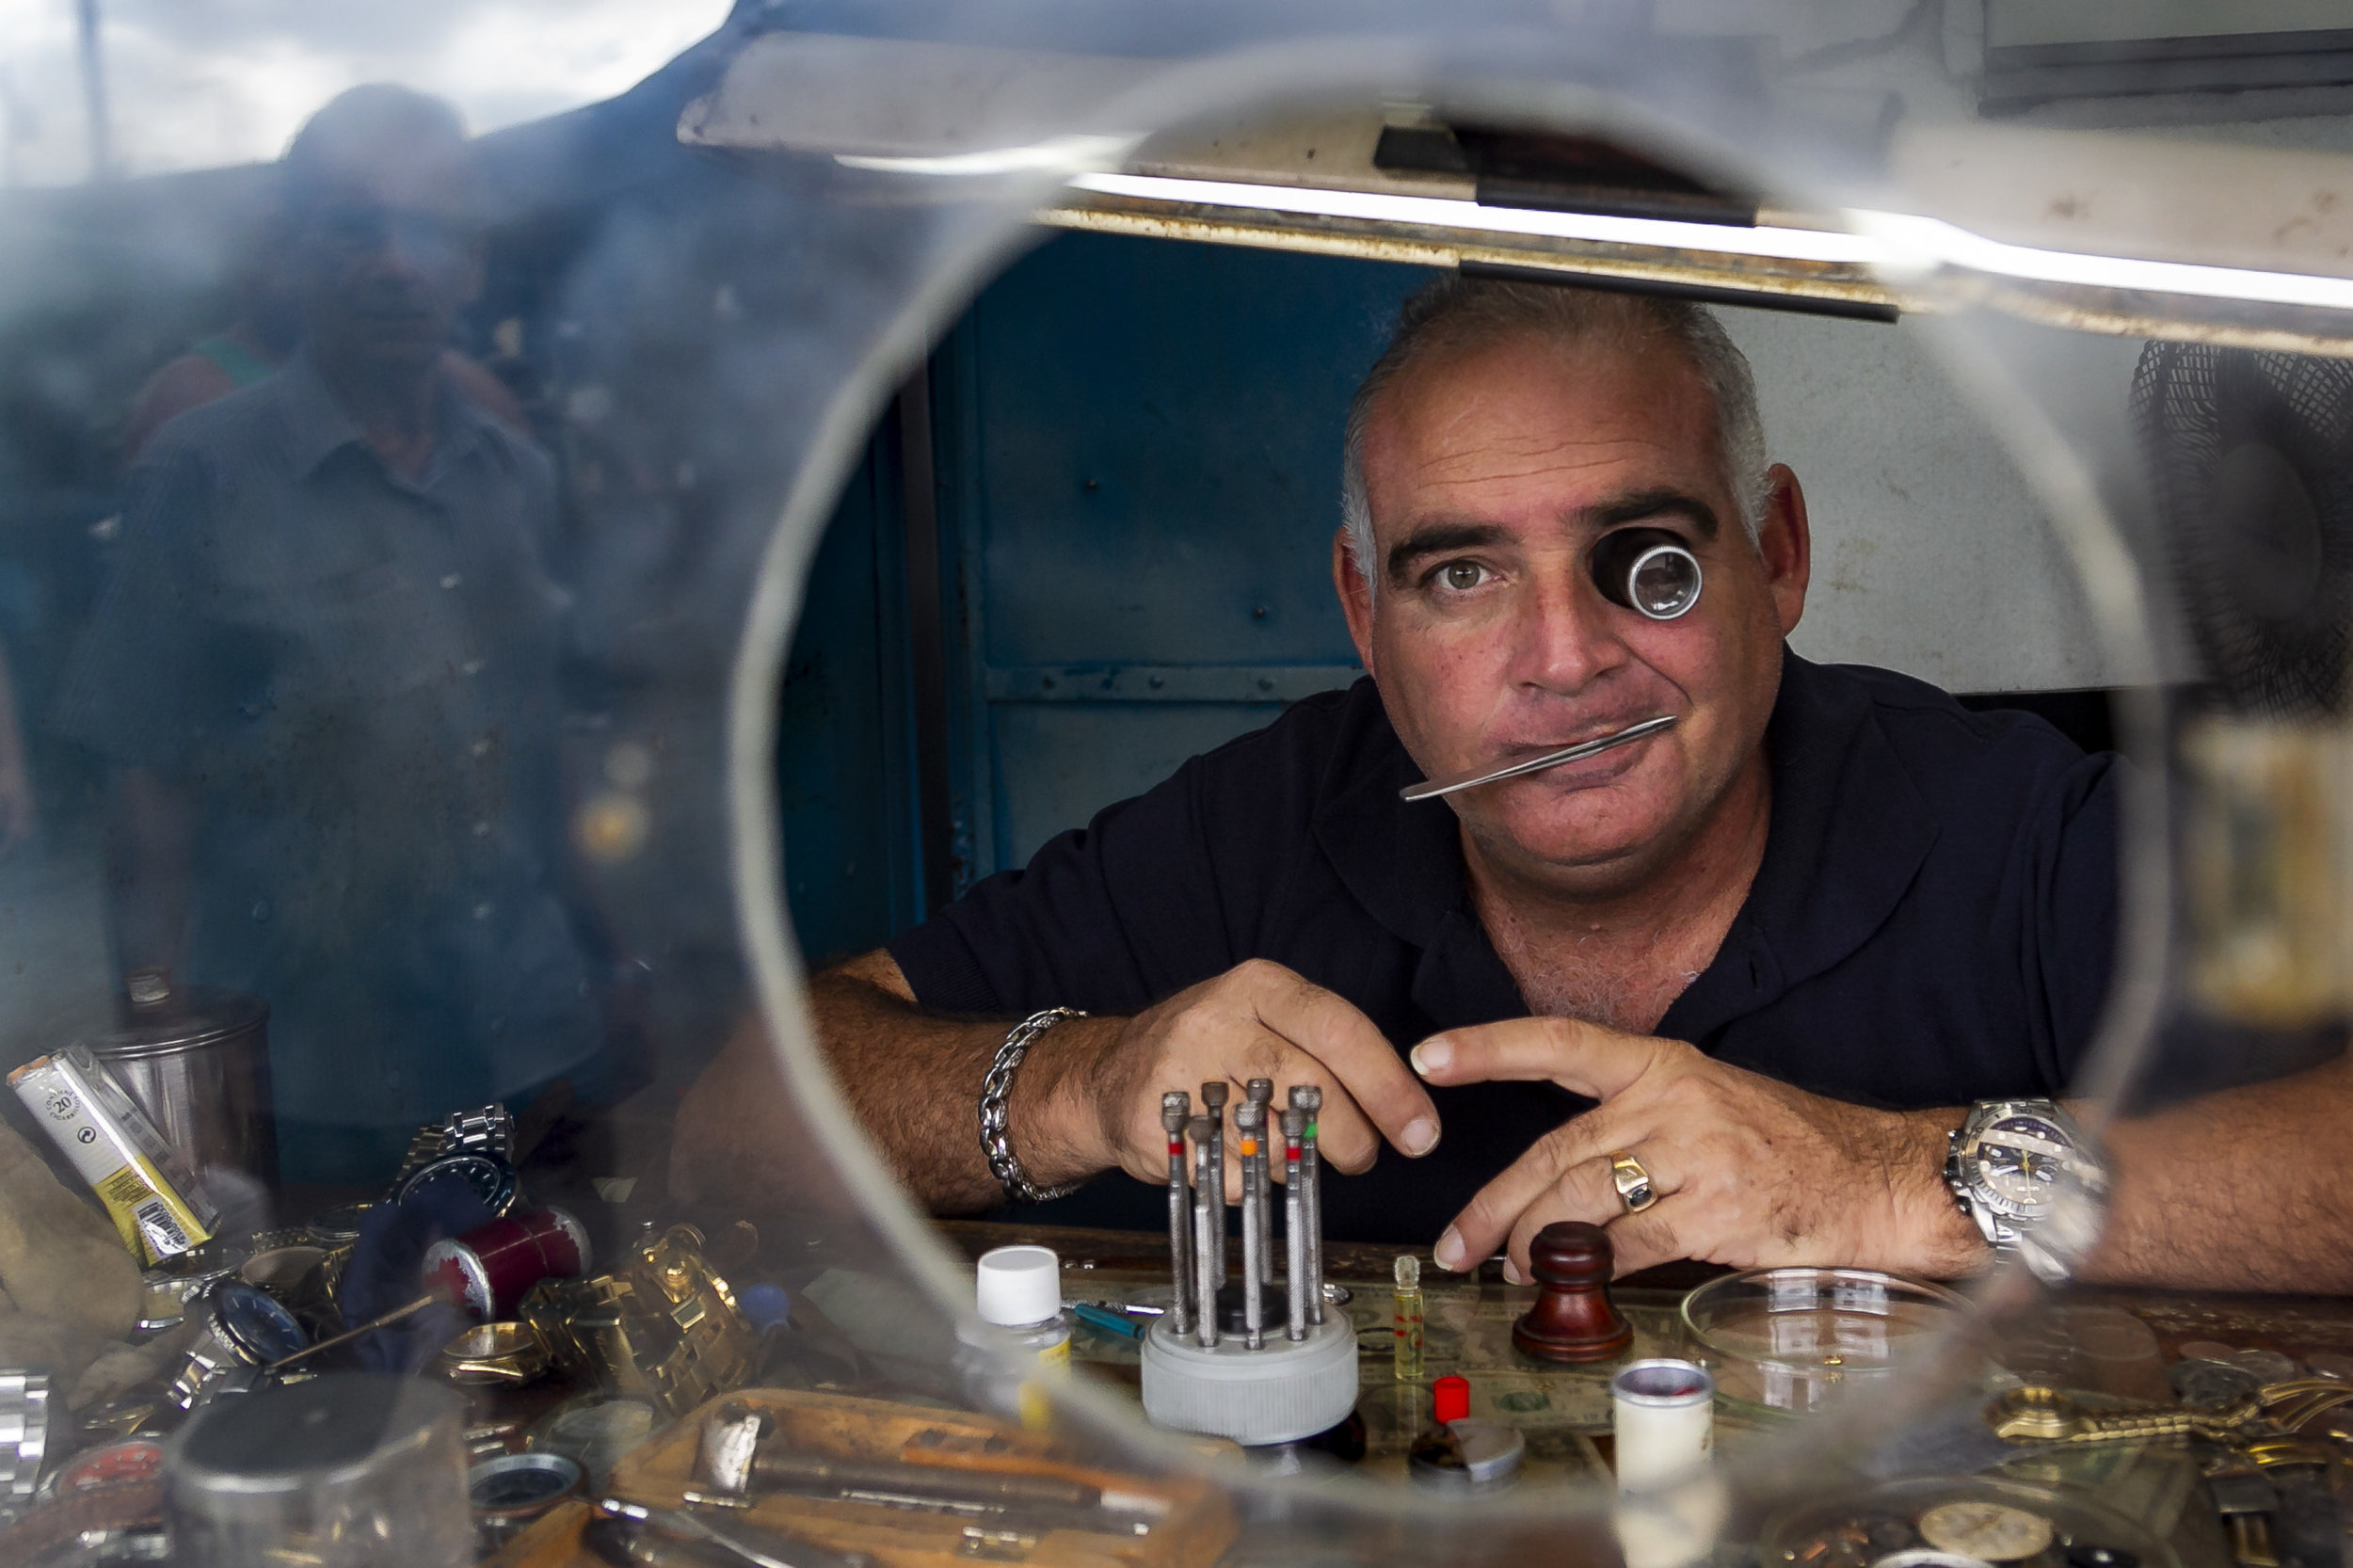 Carlos Ignacio Romero fixes watches at the Virgen del Camino market on the outskirts of Havana, Cuba on November 16, 2018. New regulations that put more restrictions on Cuba's self employed sector are going in affect December 7, 2018.